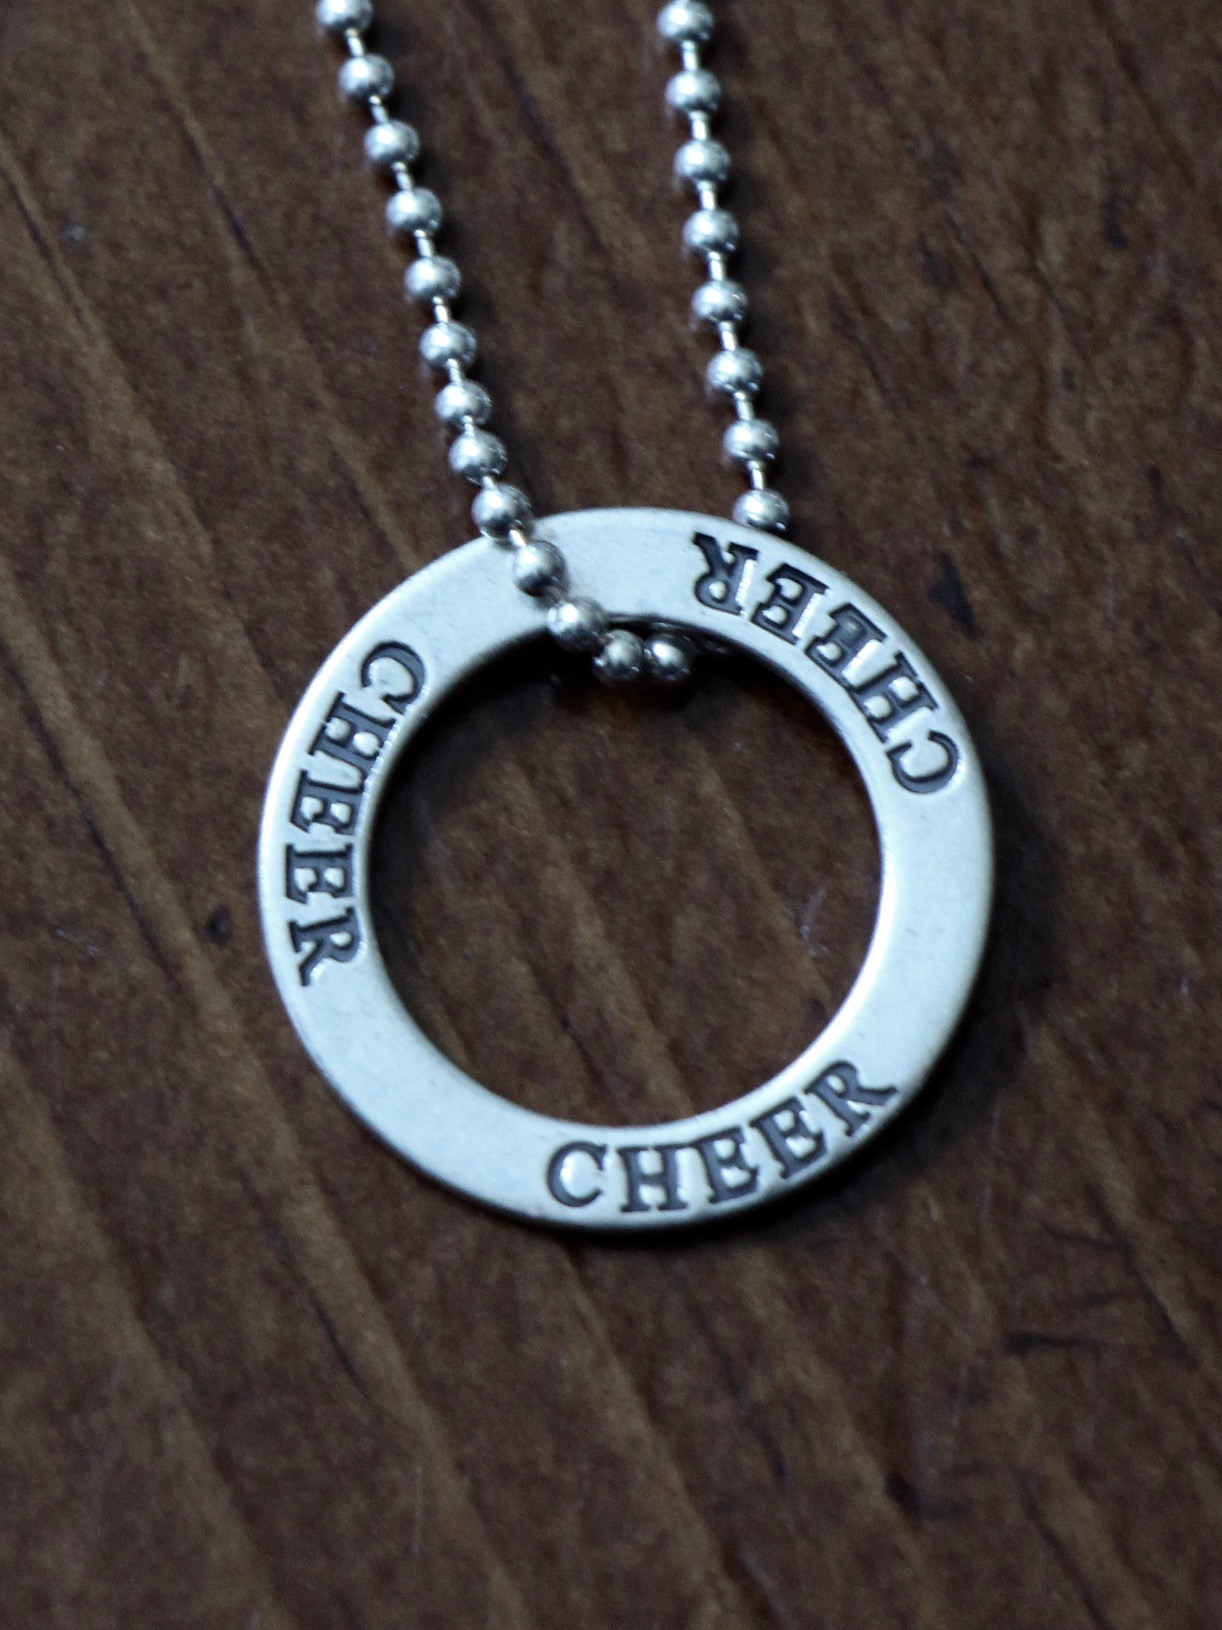 Cheerleader Necklace Cheer Jewelry Gift kandsimpressions